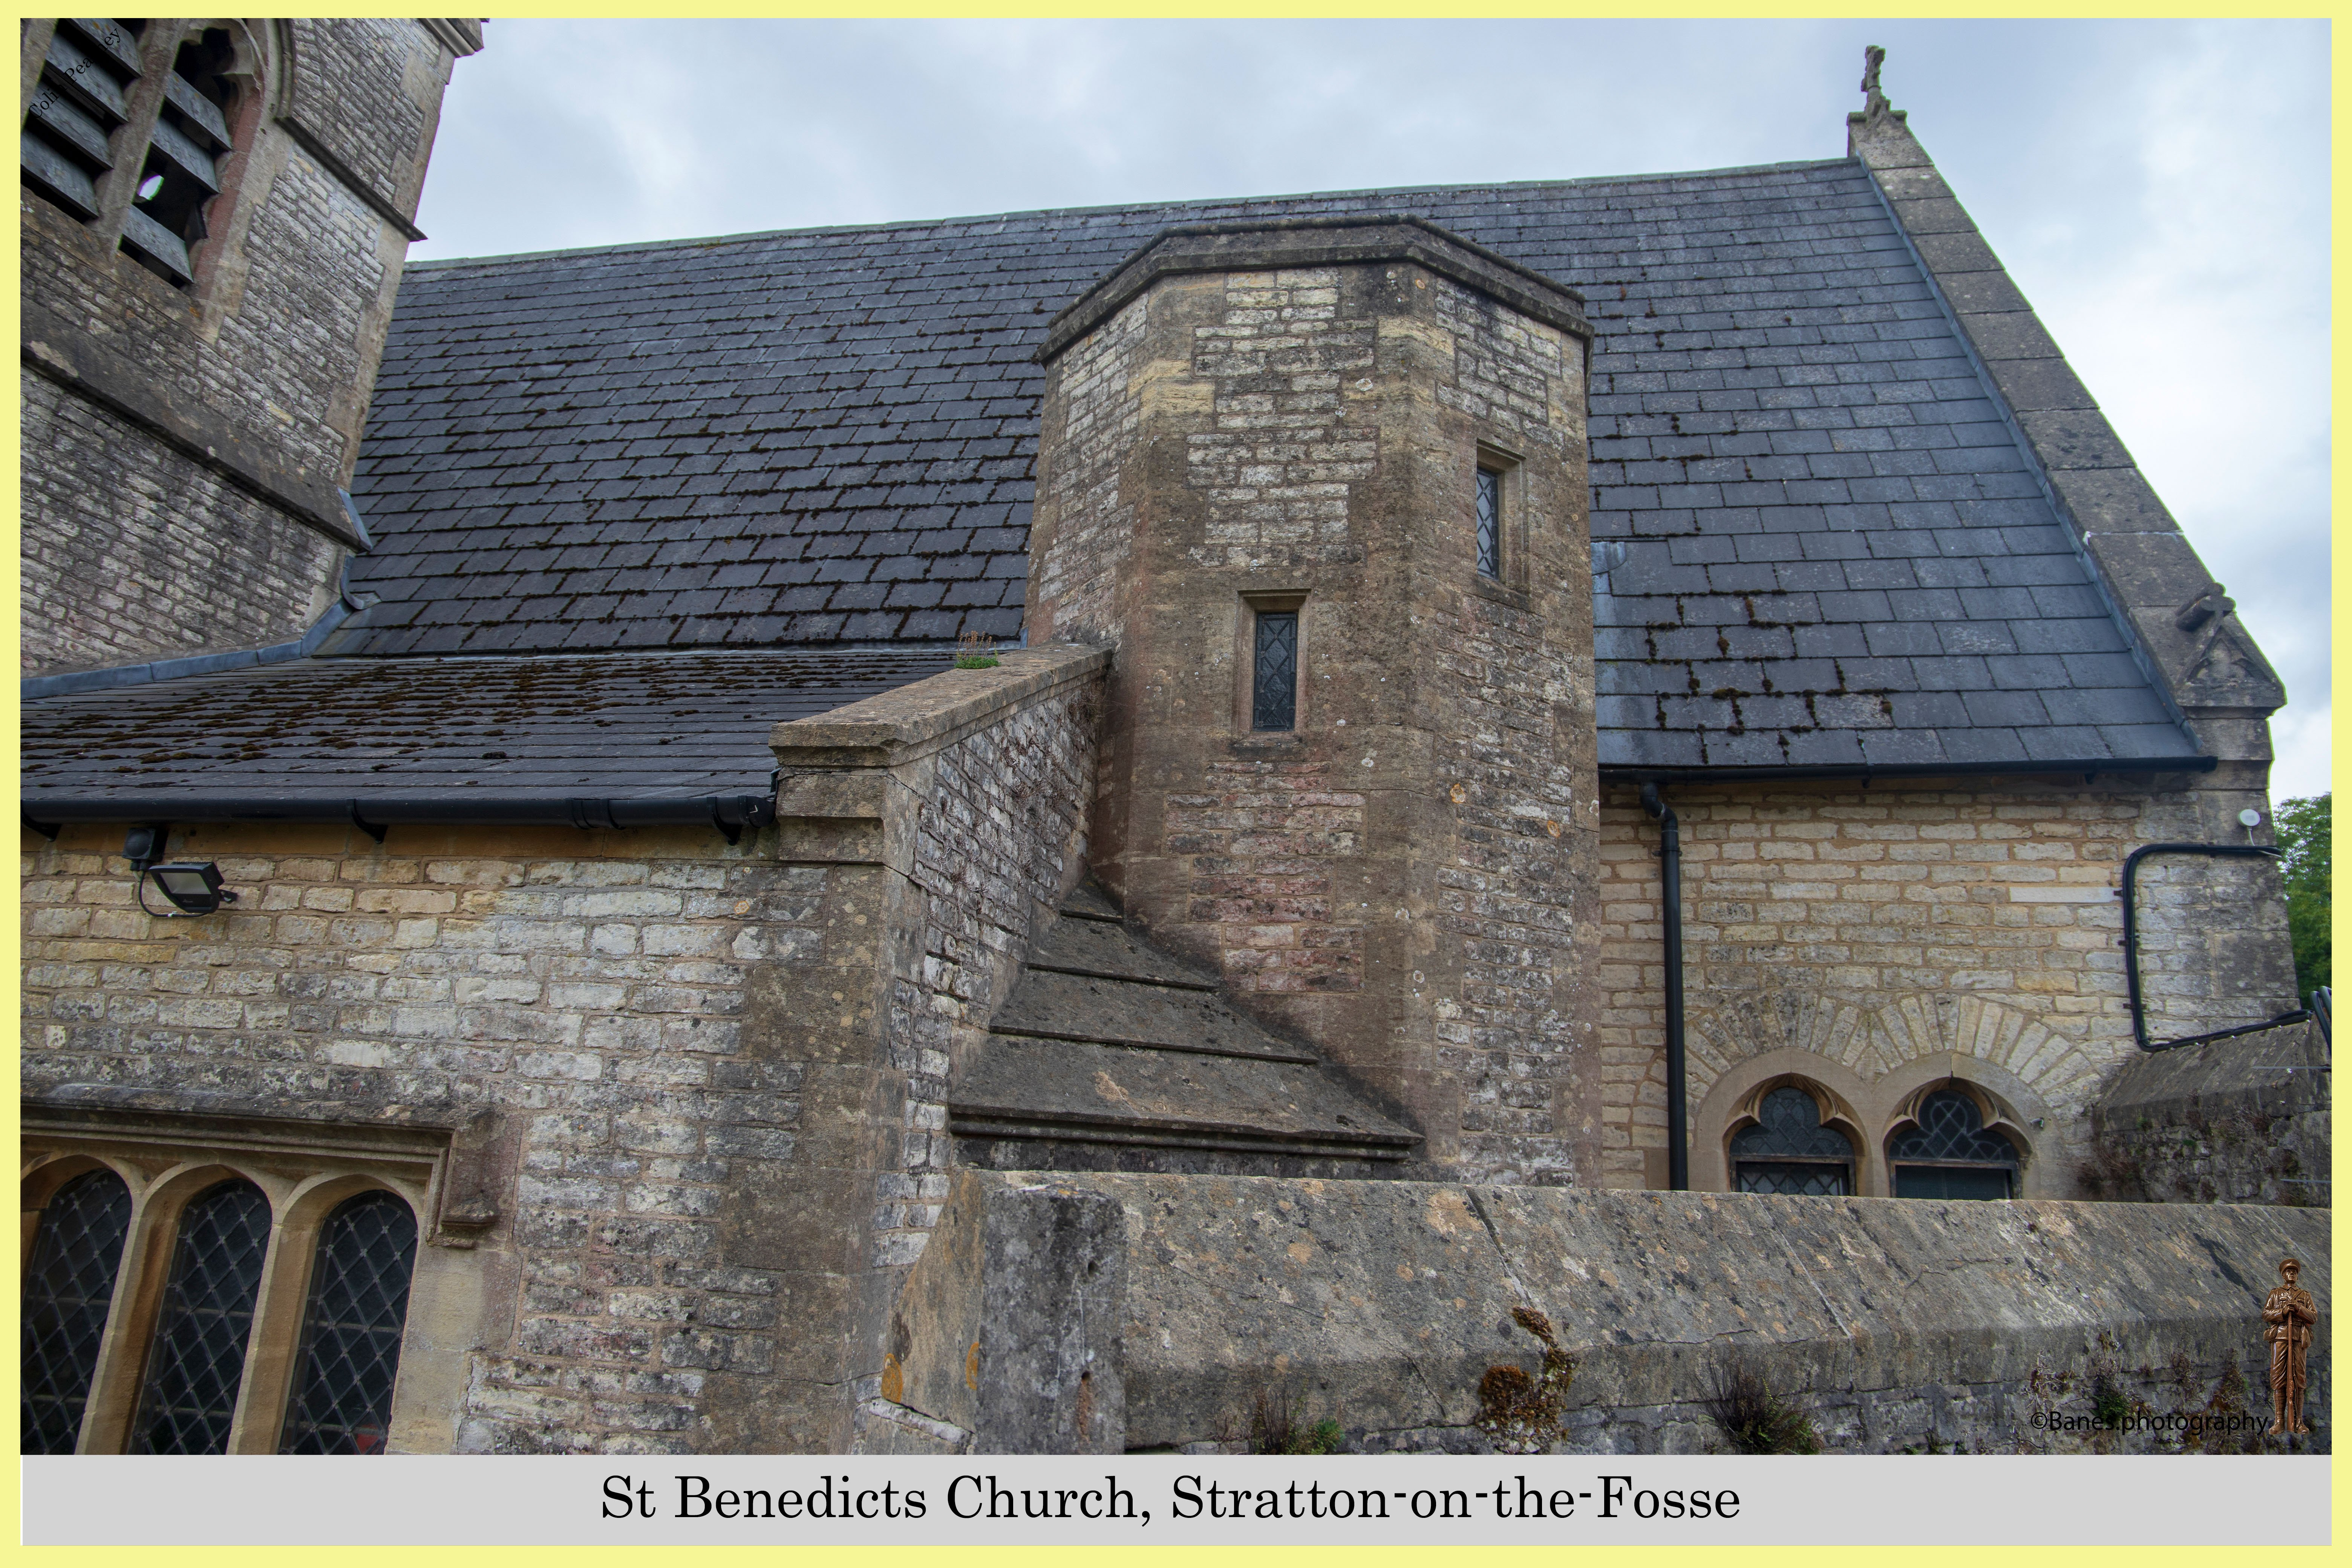 St Benedicts Church, Stratton-on-the-Fosse, UK